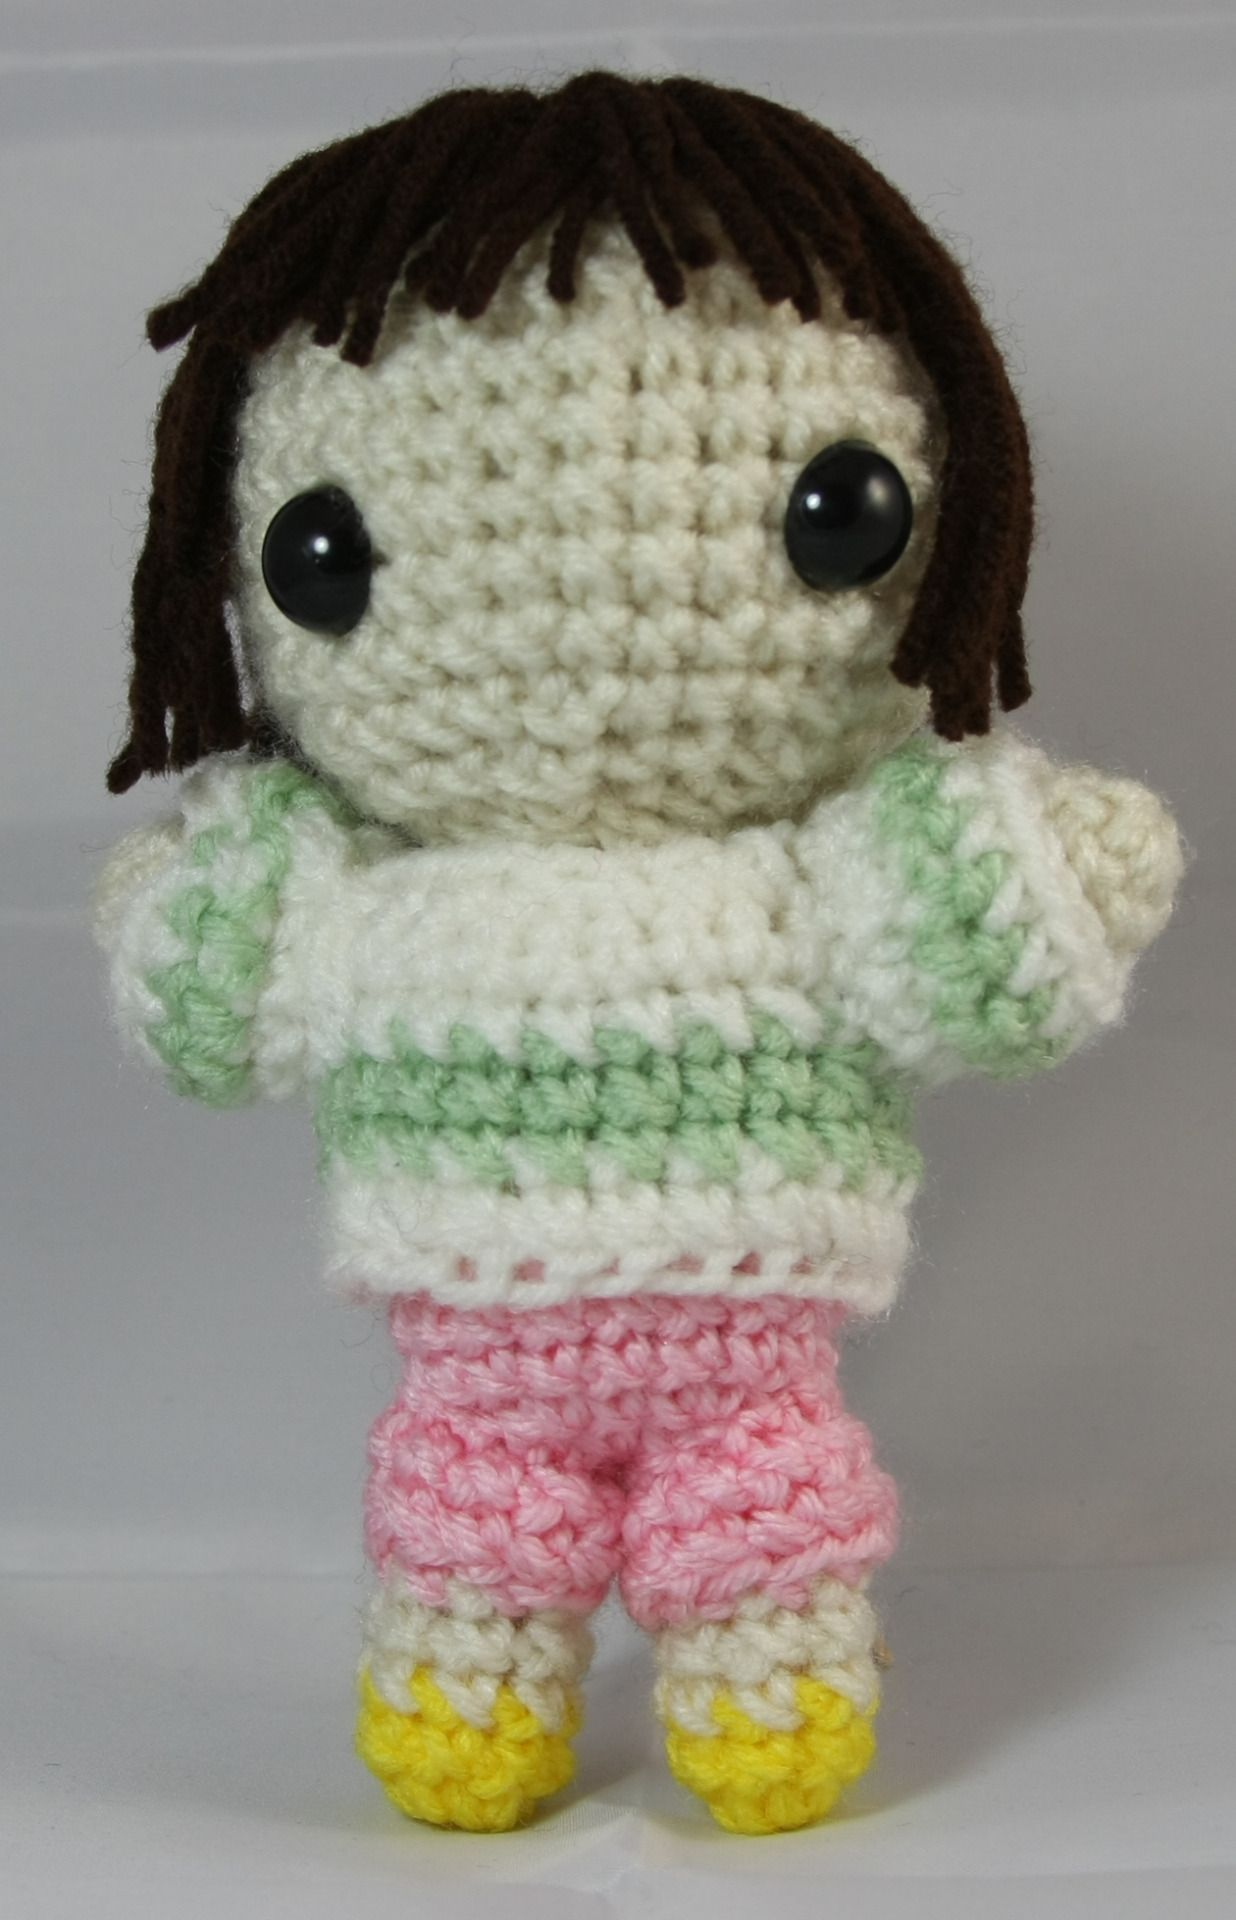 Chihiro crochet pattern spirited away crochet pinterest day chihiro from spirited away im starting the seven days of patterns with the heroine of studio ghiblis spirited away directed by hayao miyazaki bankloansurffo Images